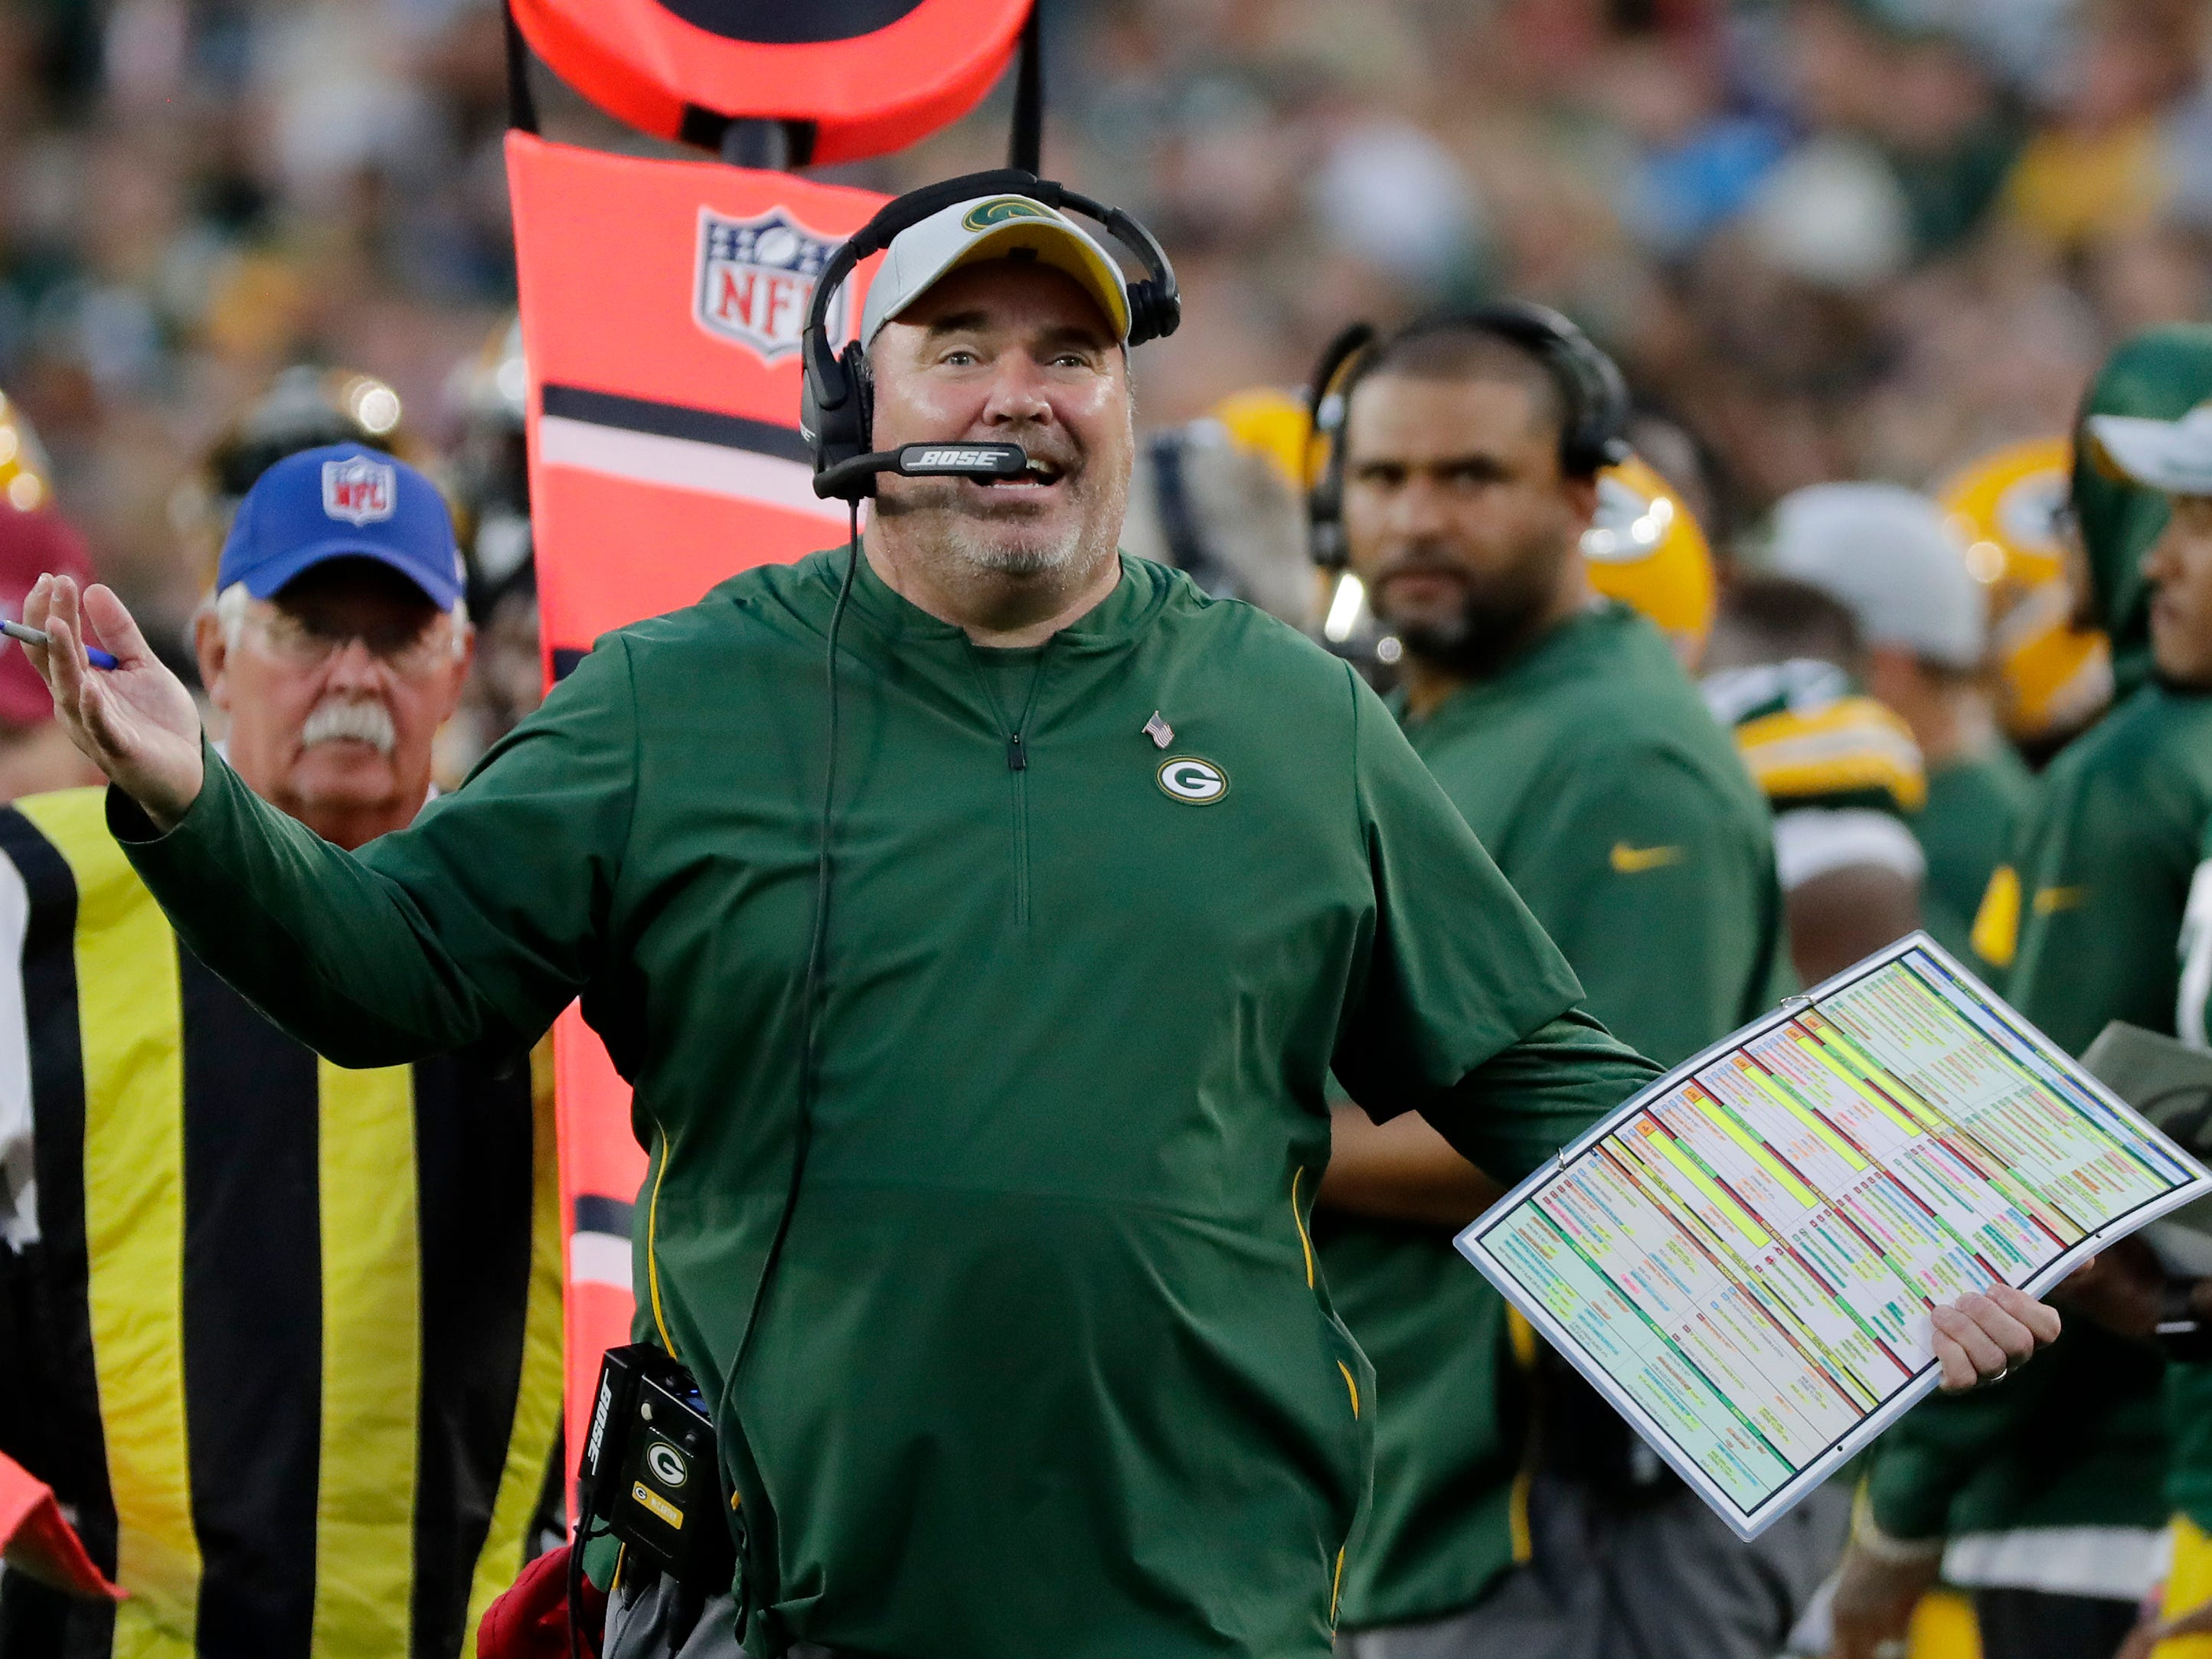 Green Bay Packers head coach Mike McCarthy reacts on the sideline during an NFL preseason game at Lambeau Field on Thursday, August 9, 2018 in Green Bay, Wis.